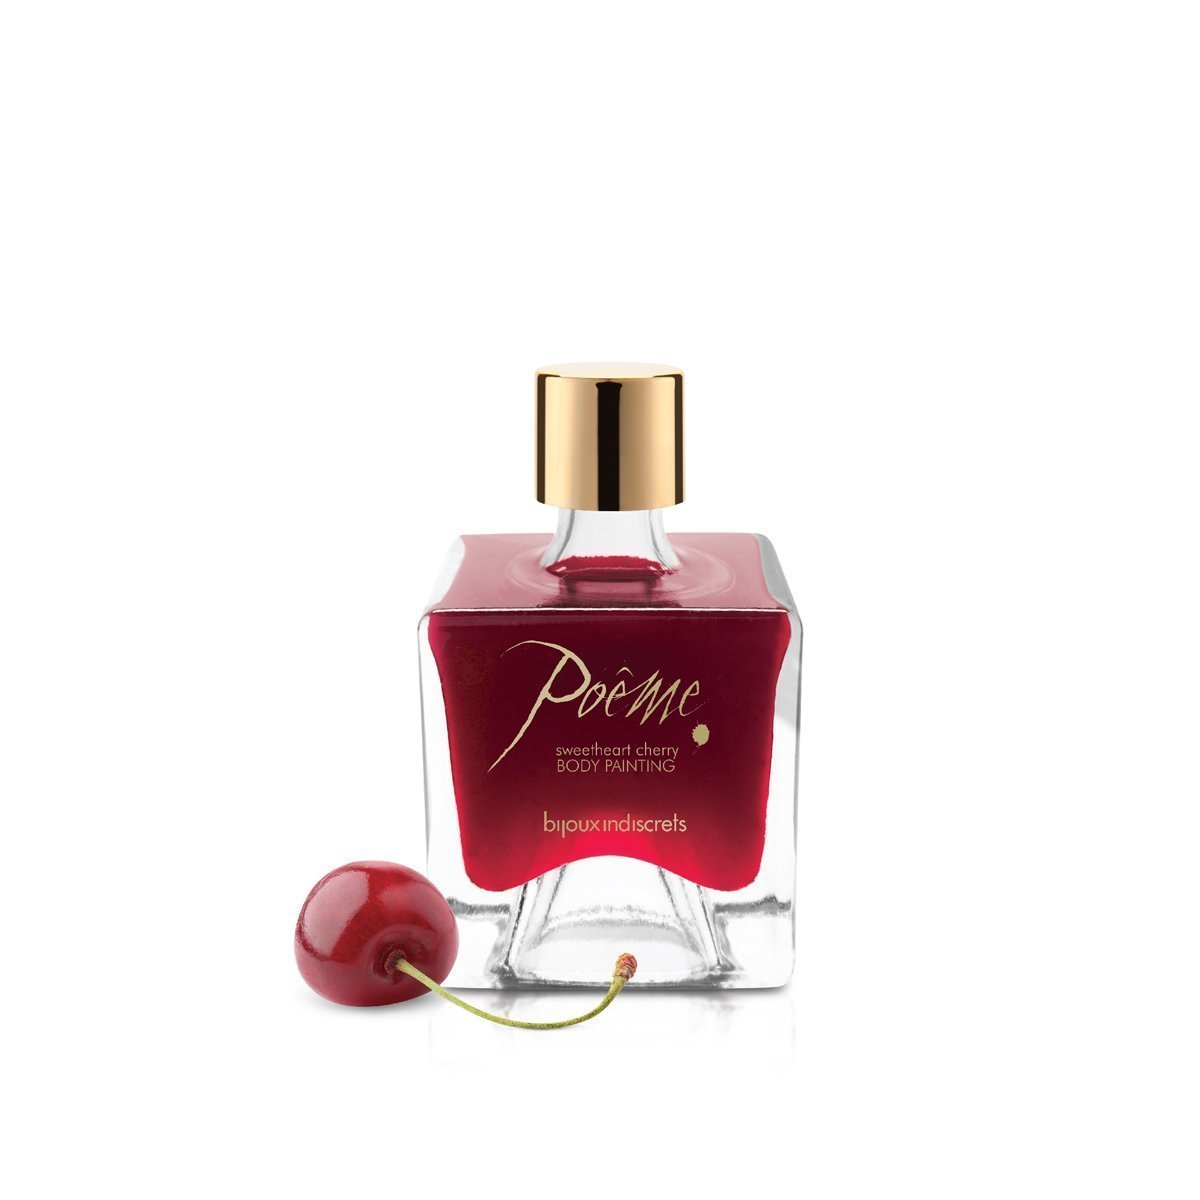 Bijoux Indescrets body paint Poeme Sweetheart Cherry Set - Body Paint